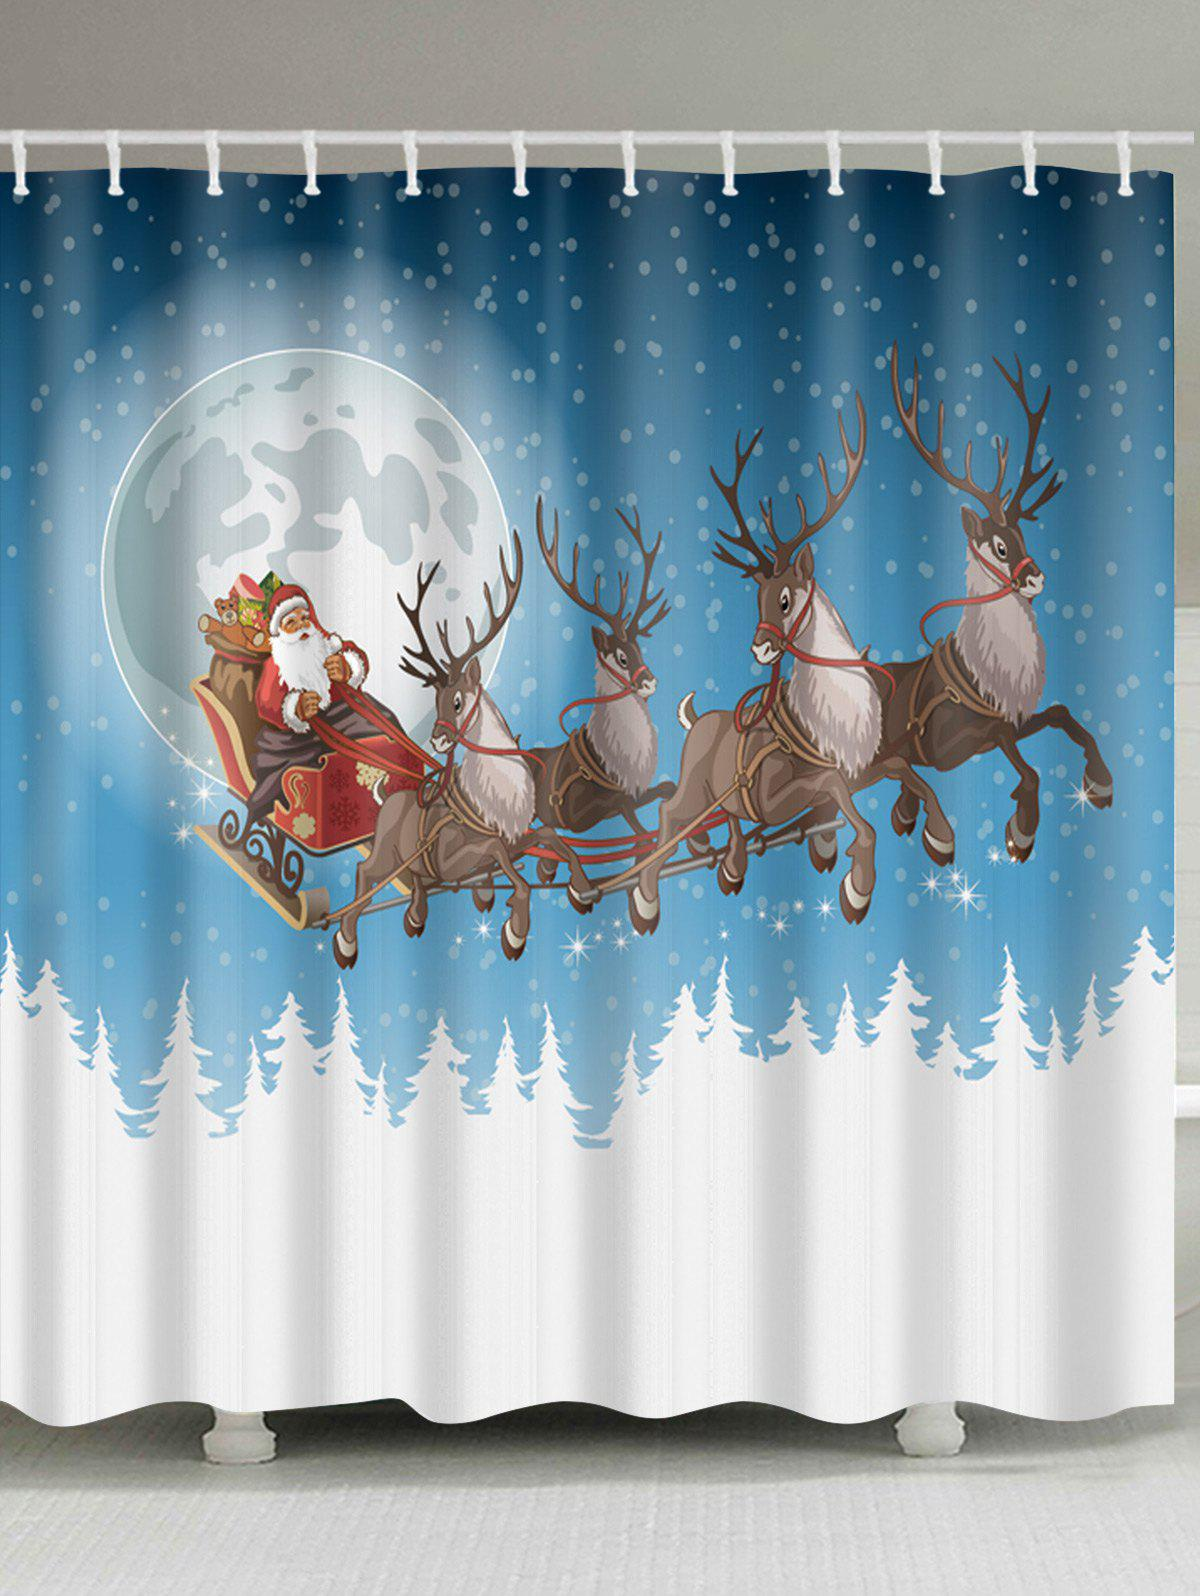 Christmas Moon Deer Sleigh Print Waterproof Bathroom Shower CurtainHOME<br><br>Size: W71 INCH * L79 INCH; Color: COLORMIX; Products Type: Shower Curtains; Materials: Polyester; Pattern: Animal,Moon,Santa Claus; Style: Festival; Number of Hook Holes: W59 inch*L71 inch: 10; W71 inch*L71 inch: 12; W71 inch*L79 inch: 12; Package Contents: 1 x Shower Curtain 1 x Hooks (Set);